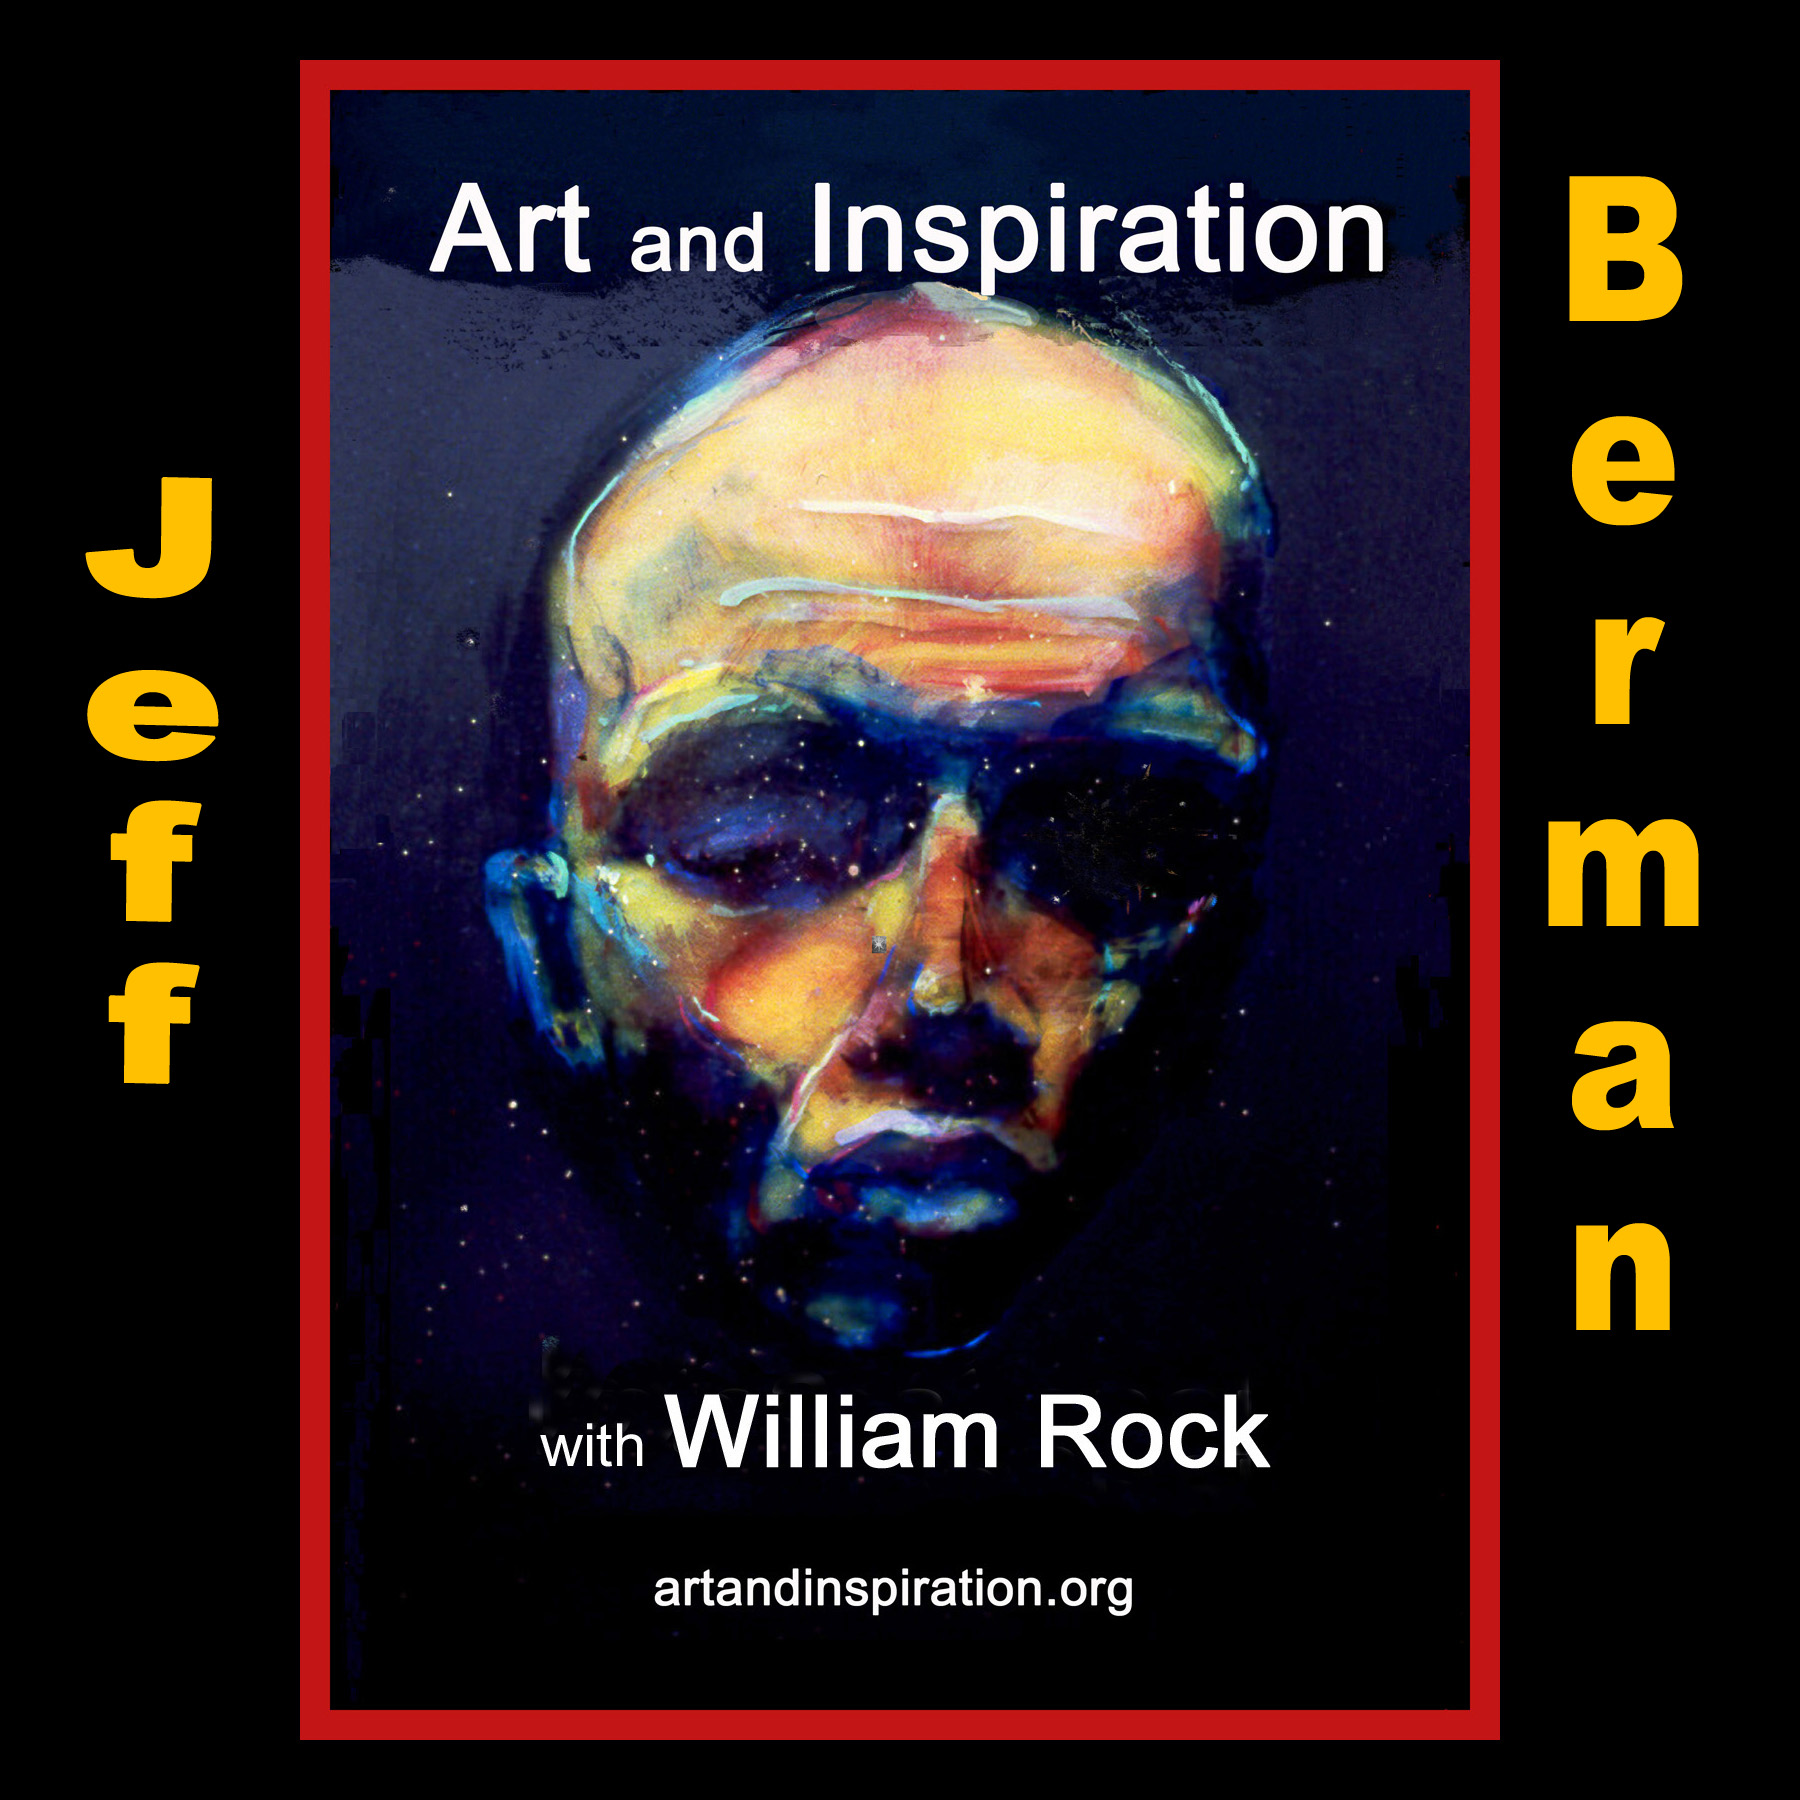 Jeff Berman on Art and Inspiration with William Rock